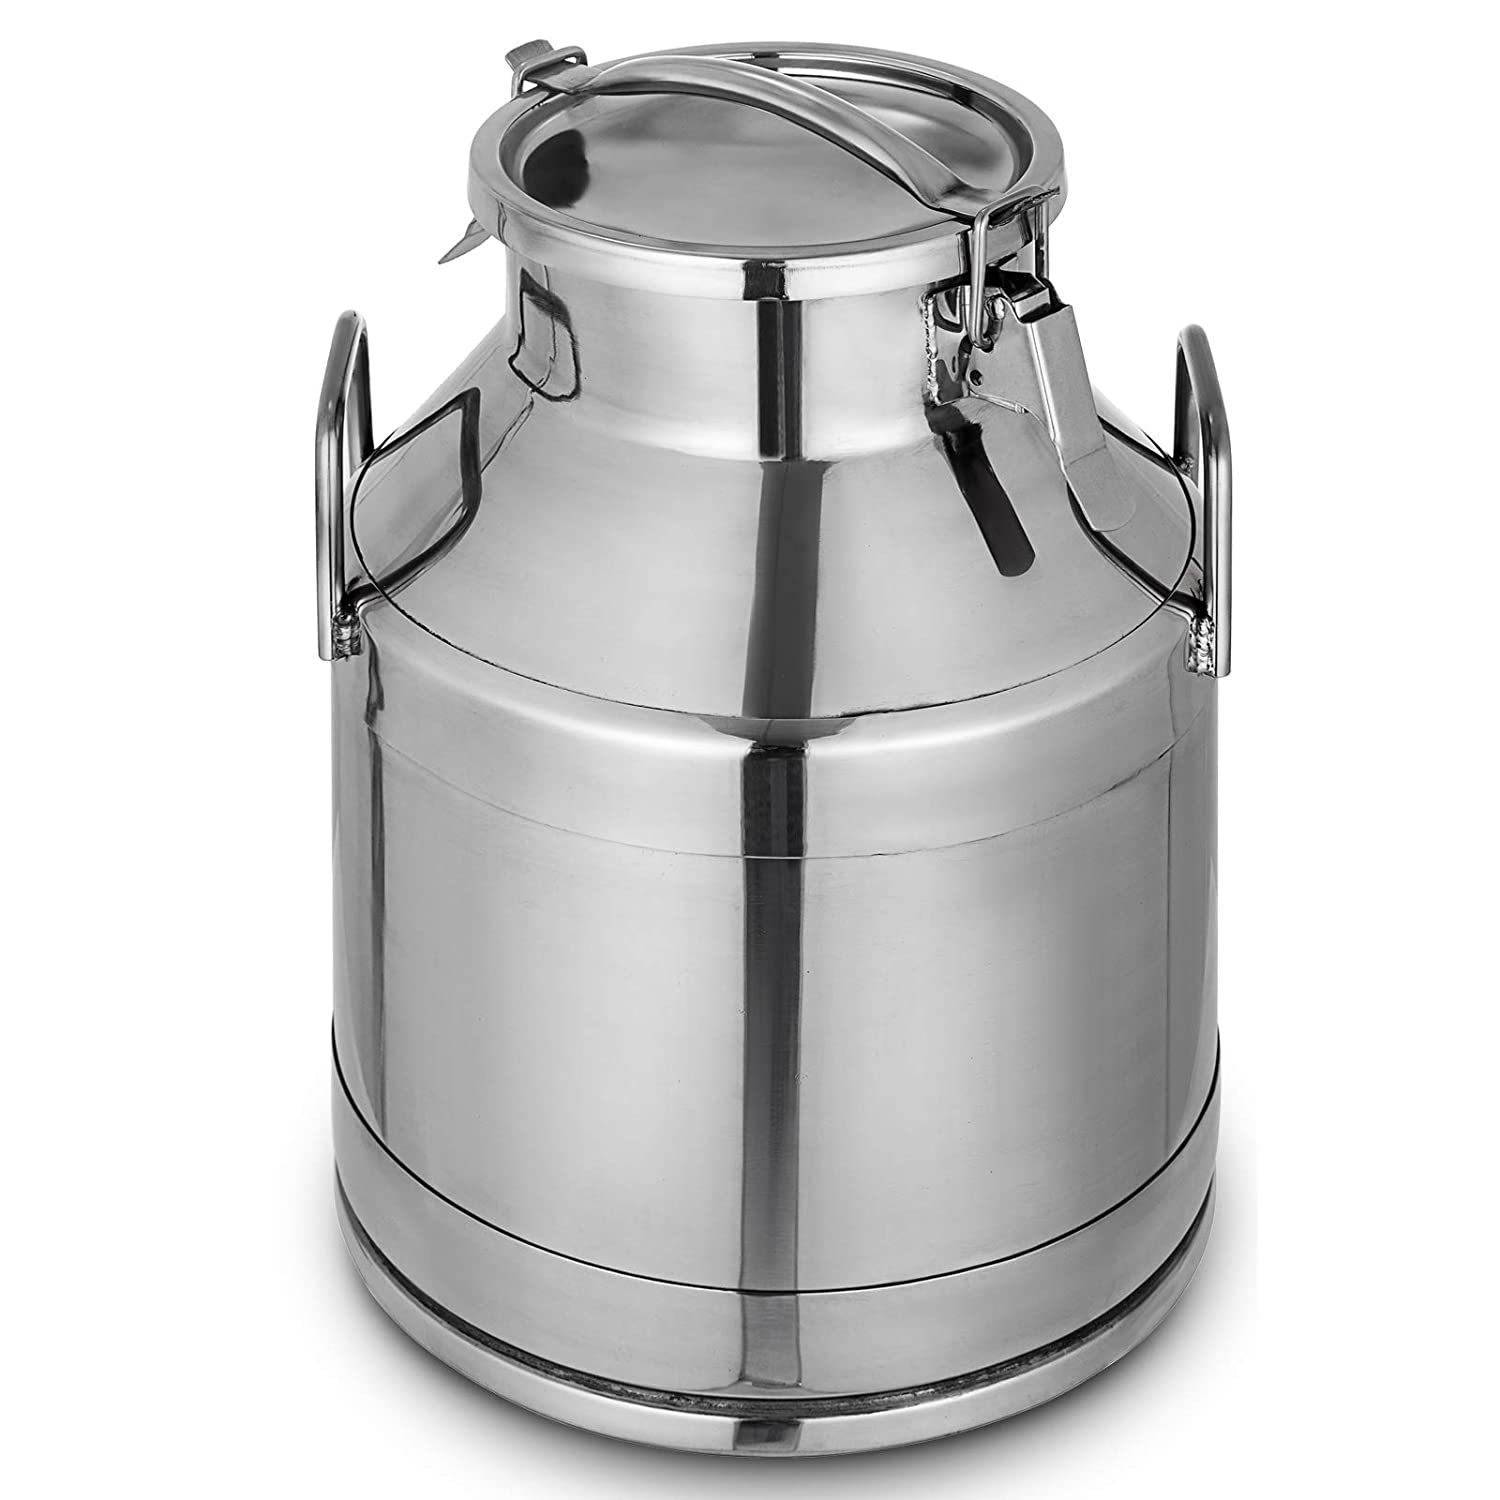 Mophorn 304 Stainless Steel Milk Can 20 Liter Milk bucket Wine Pail Bucket 5.25 Gallon Milk Can Tote Jug with Sealed Lid Heavy Duty